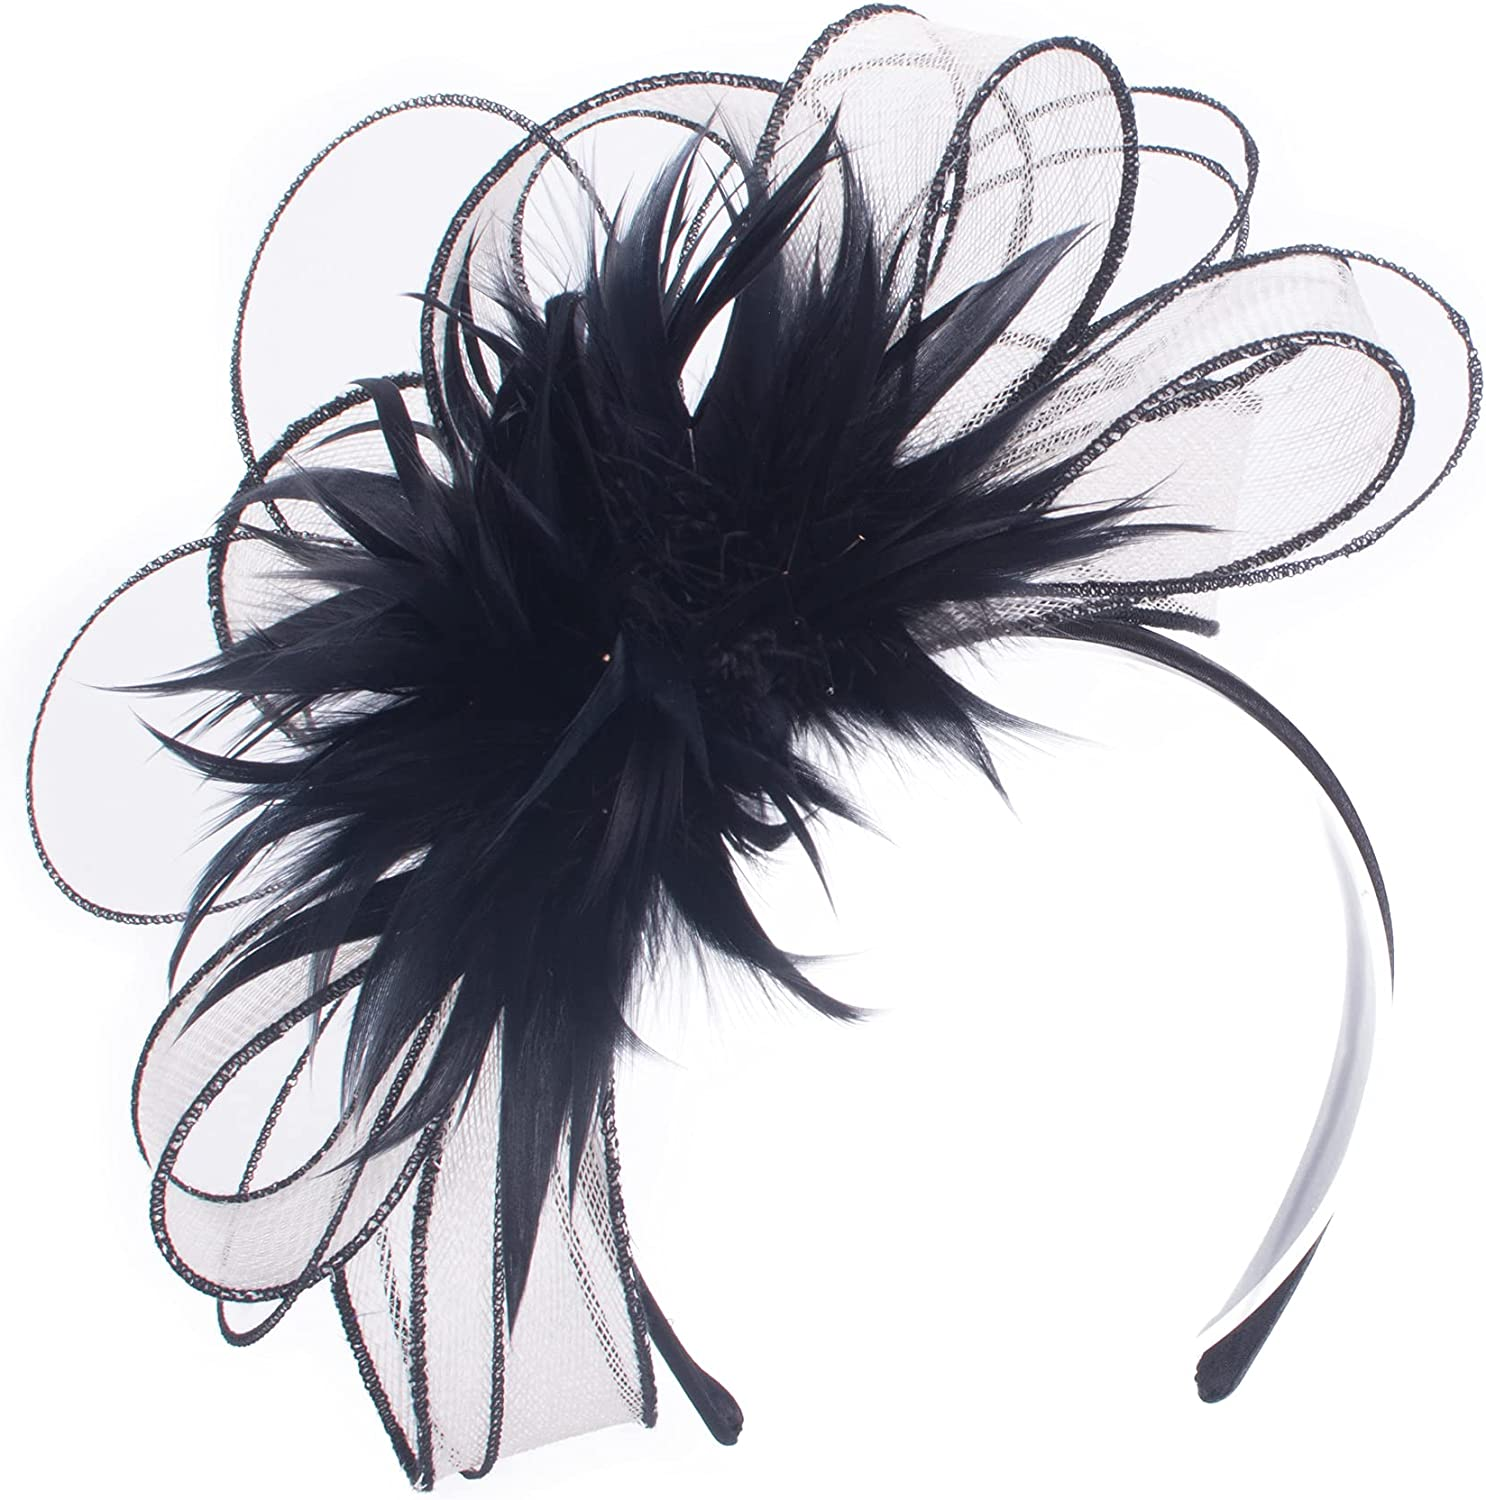 Lawliet Black with White Womens Elegant Derby Sinamay Floral Fascinator Headpiece T473